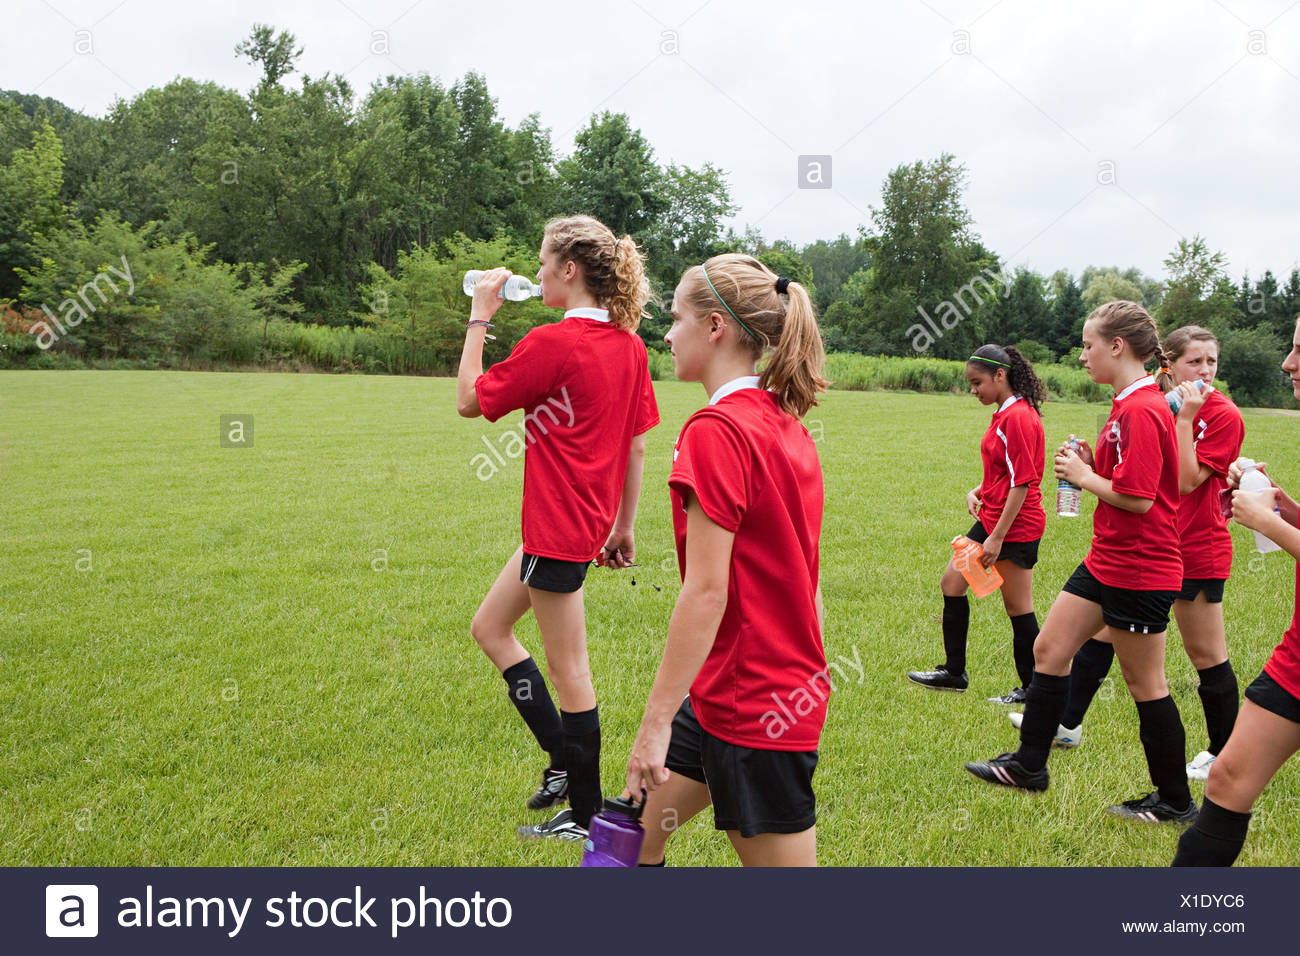 Girl soccer players on field - Stock Image